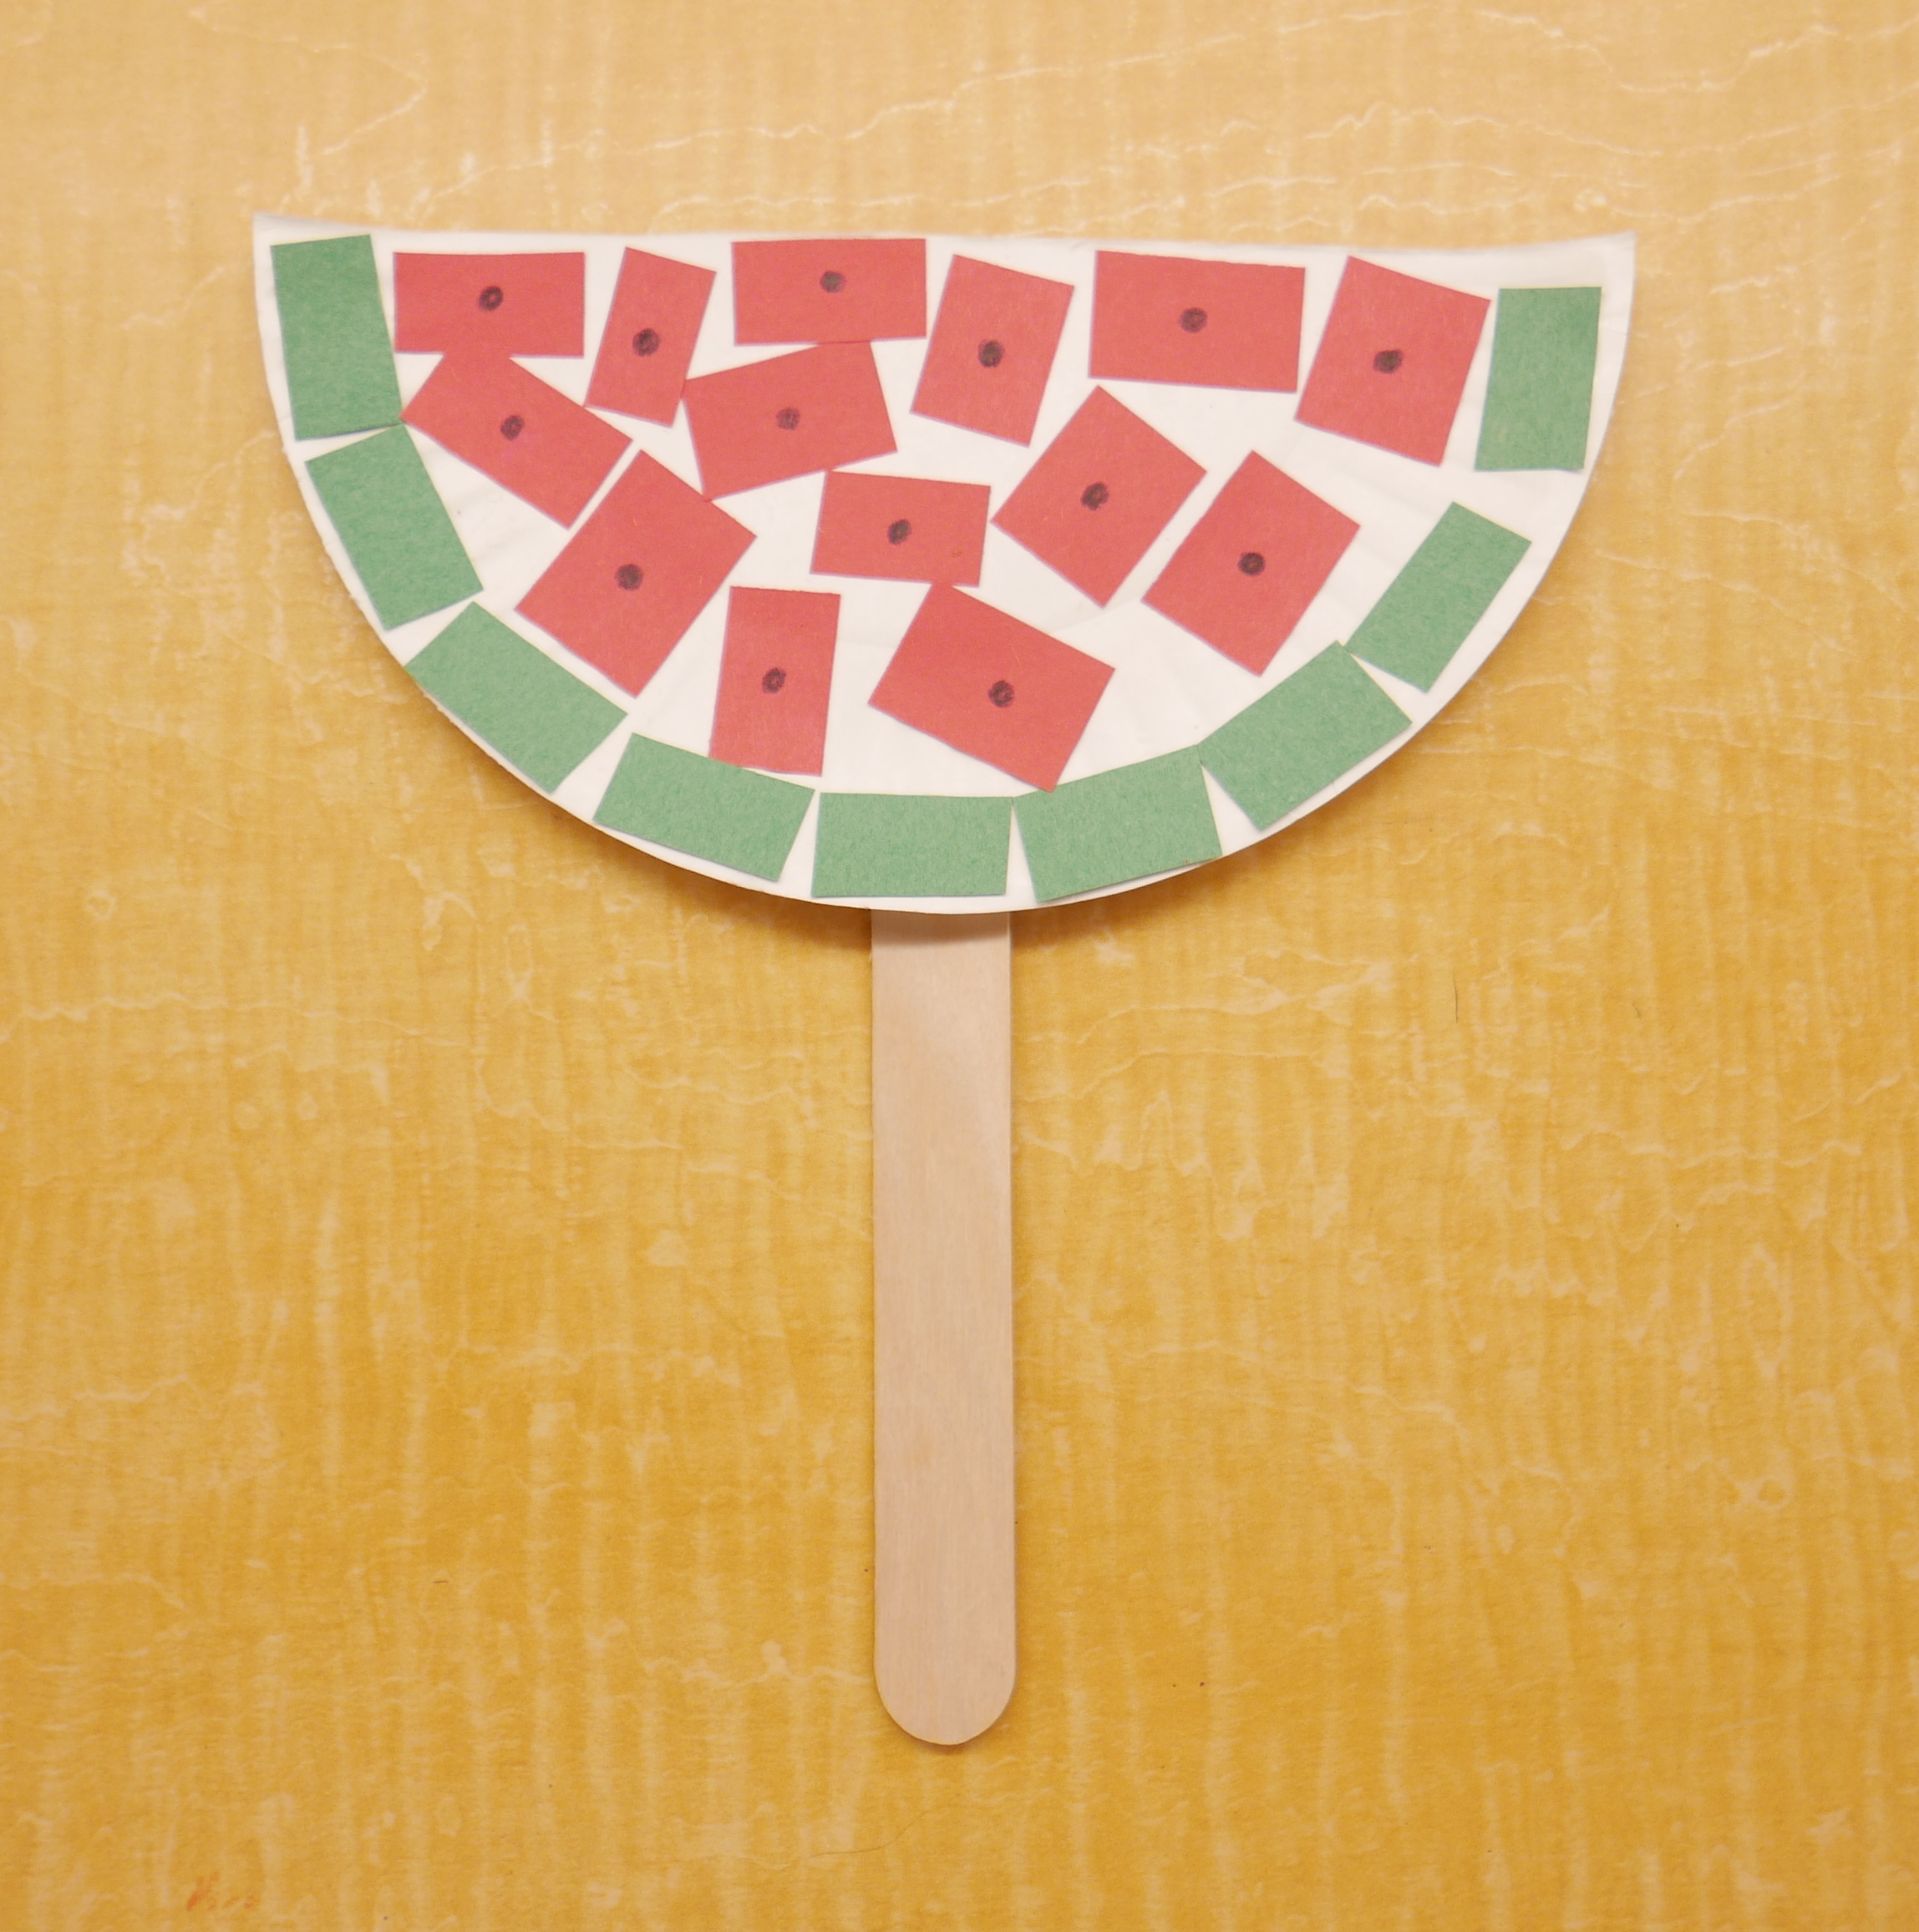 Watermelon Craft with half a paper plate and pieces of torn colored construction paper glued onto it